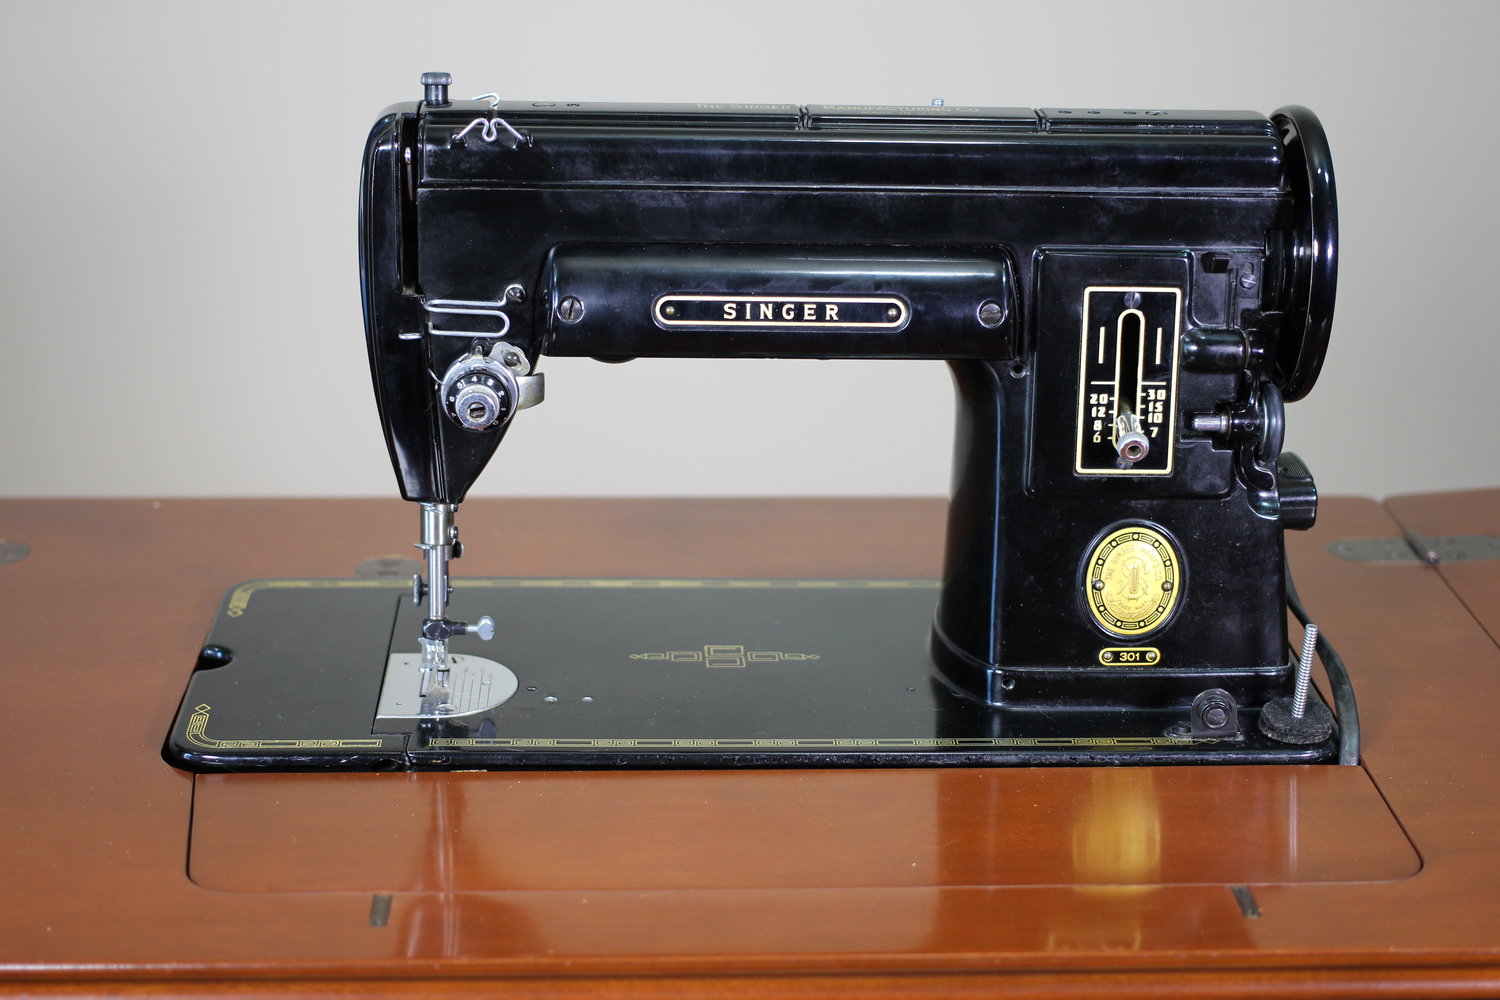 Outstanding Ebay Is Not The Place To Buy A Vintage Sewing Machine Home Interior And Landscaping Spoatsignezvosmurscom